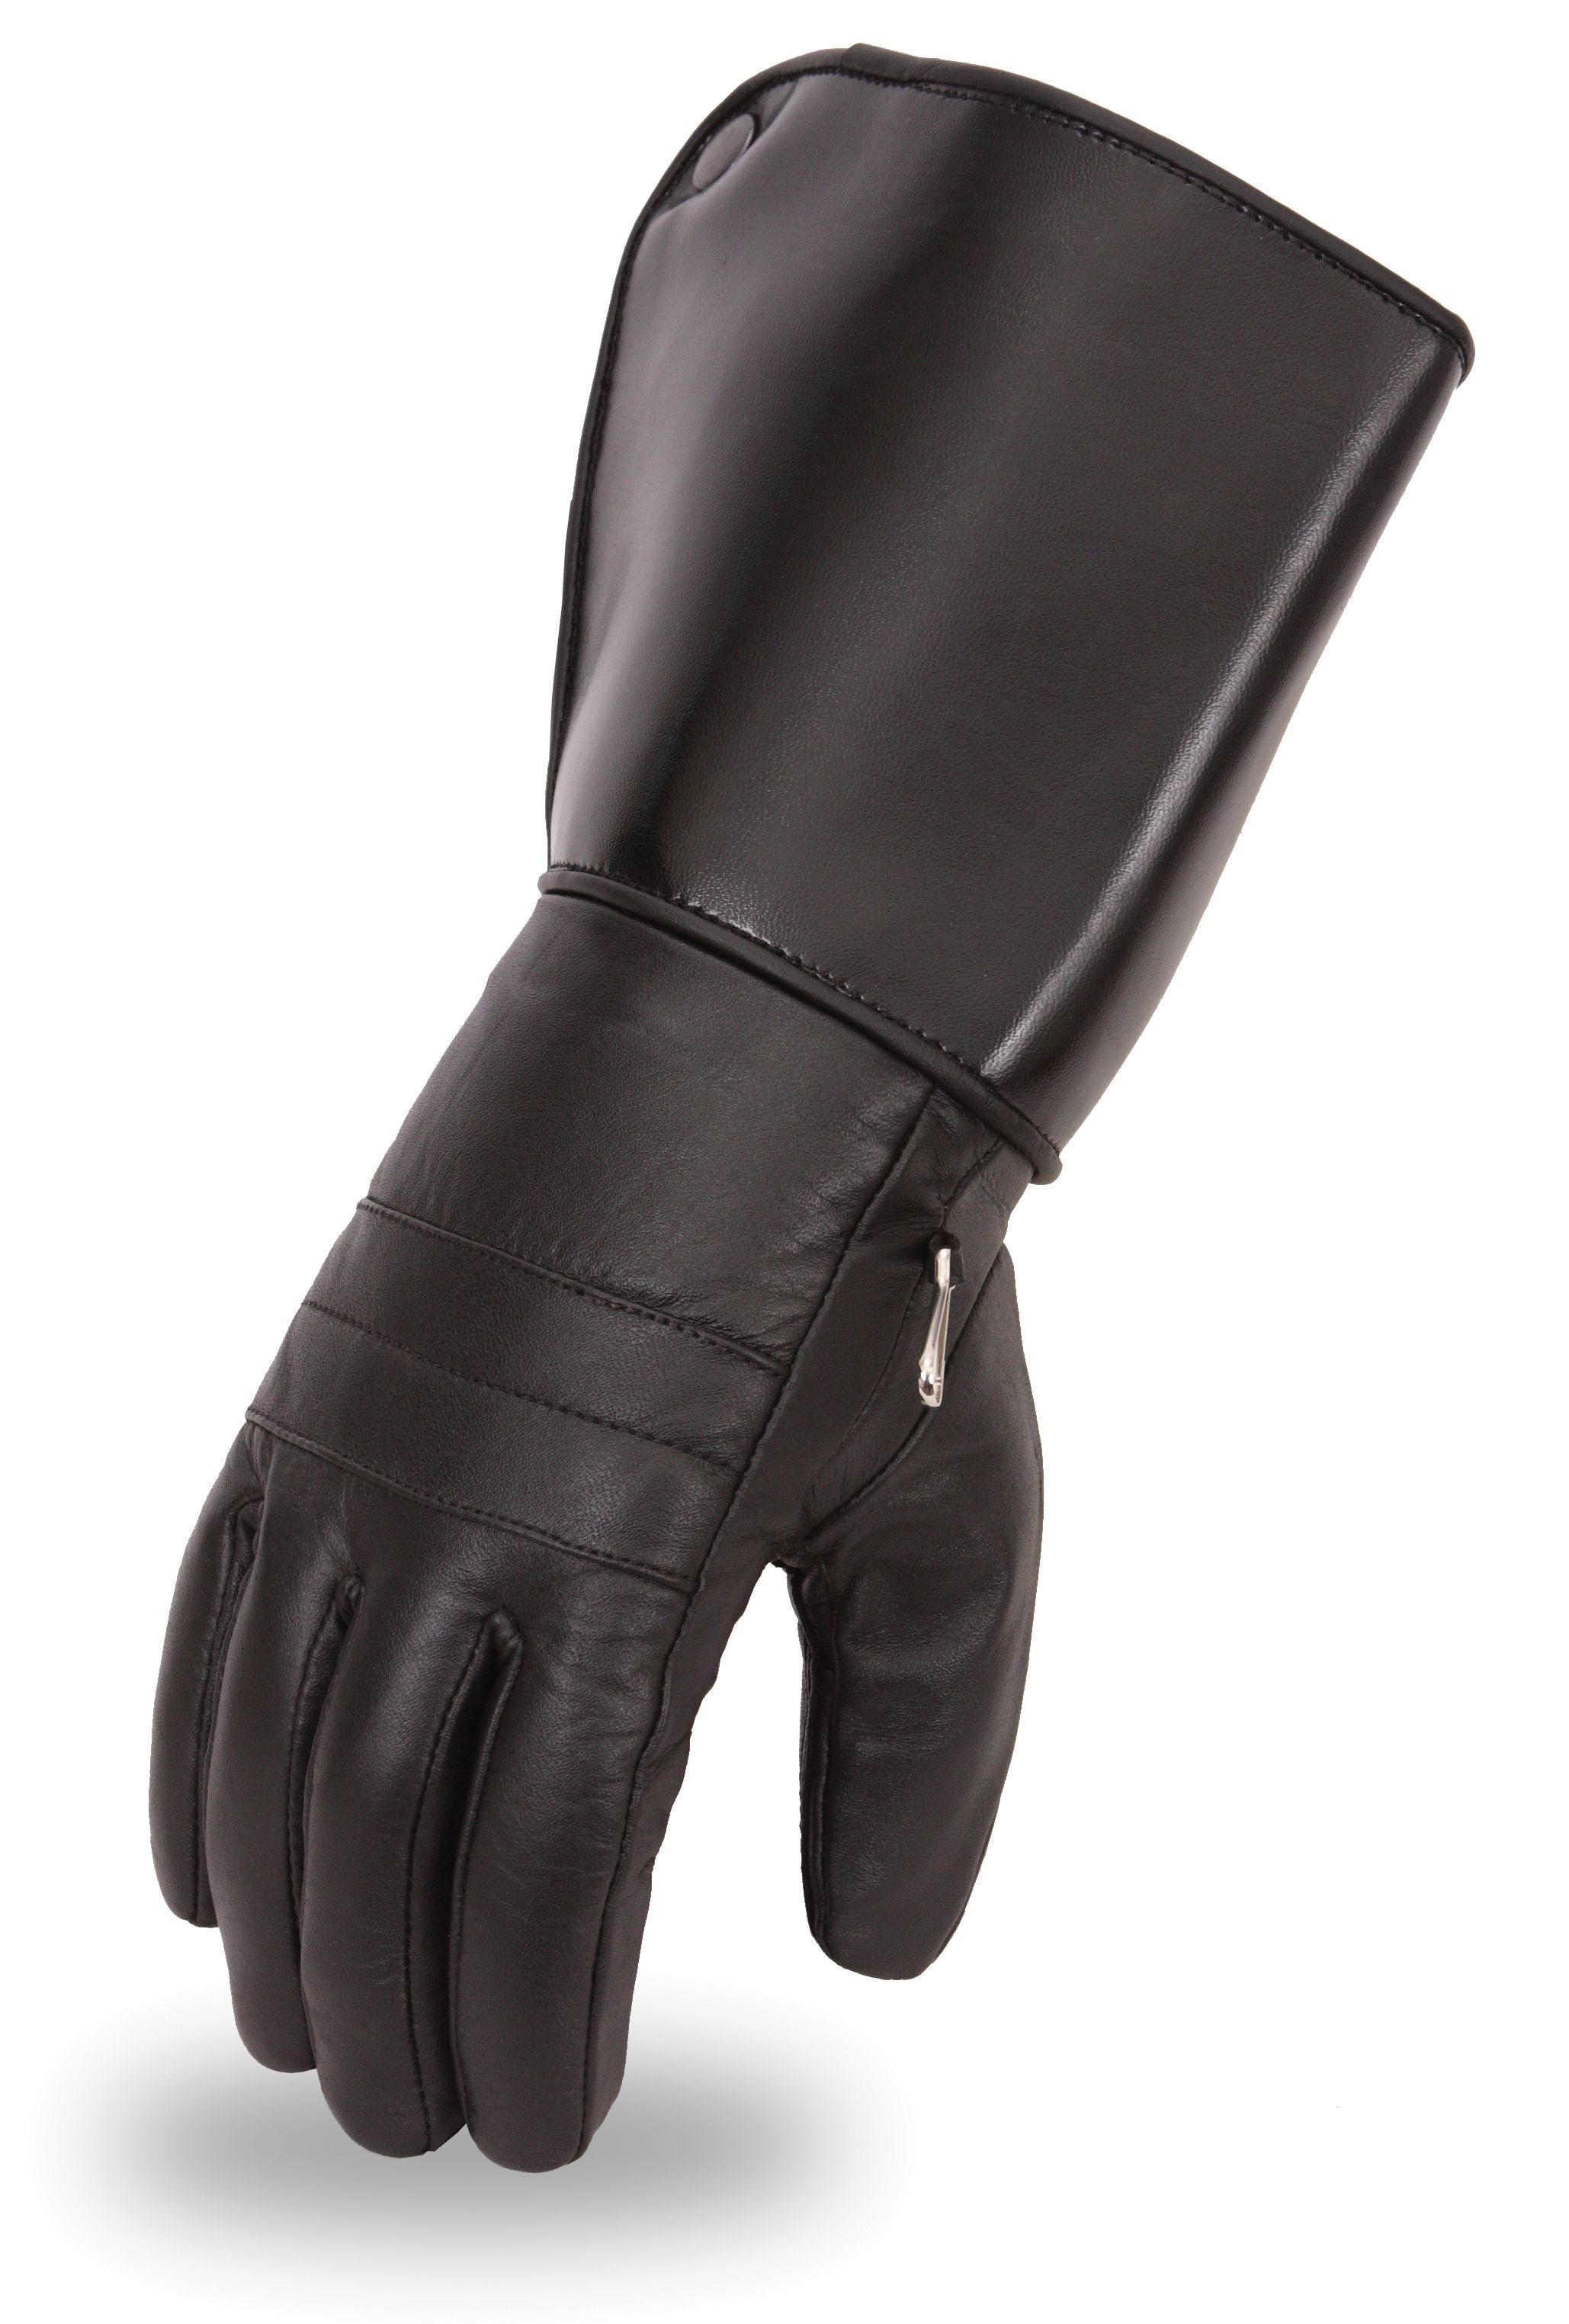 Buy leather gauntlet gloves - Fmc Cold Weather Men S Thinsulate Leather Motorcycle Gauntlet Gloves Http Www